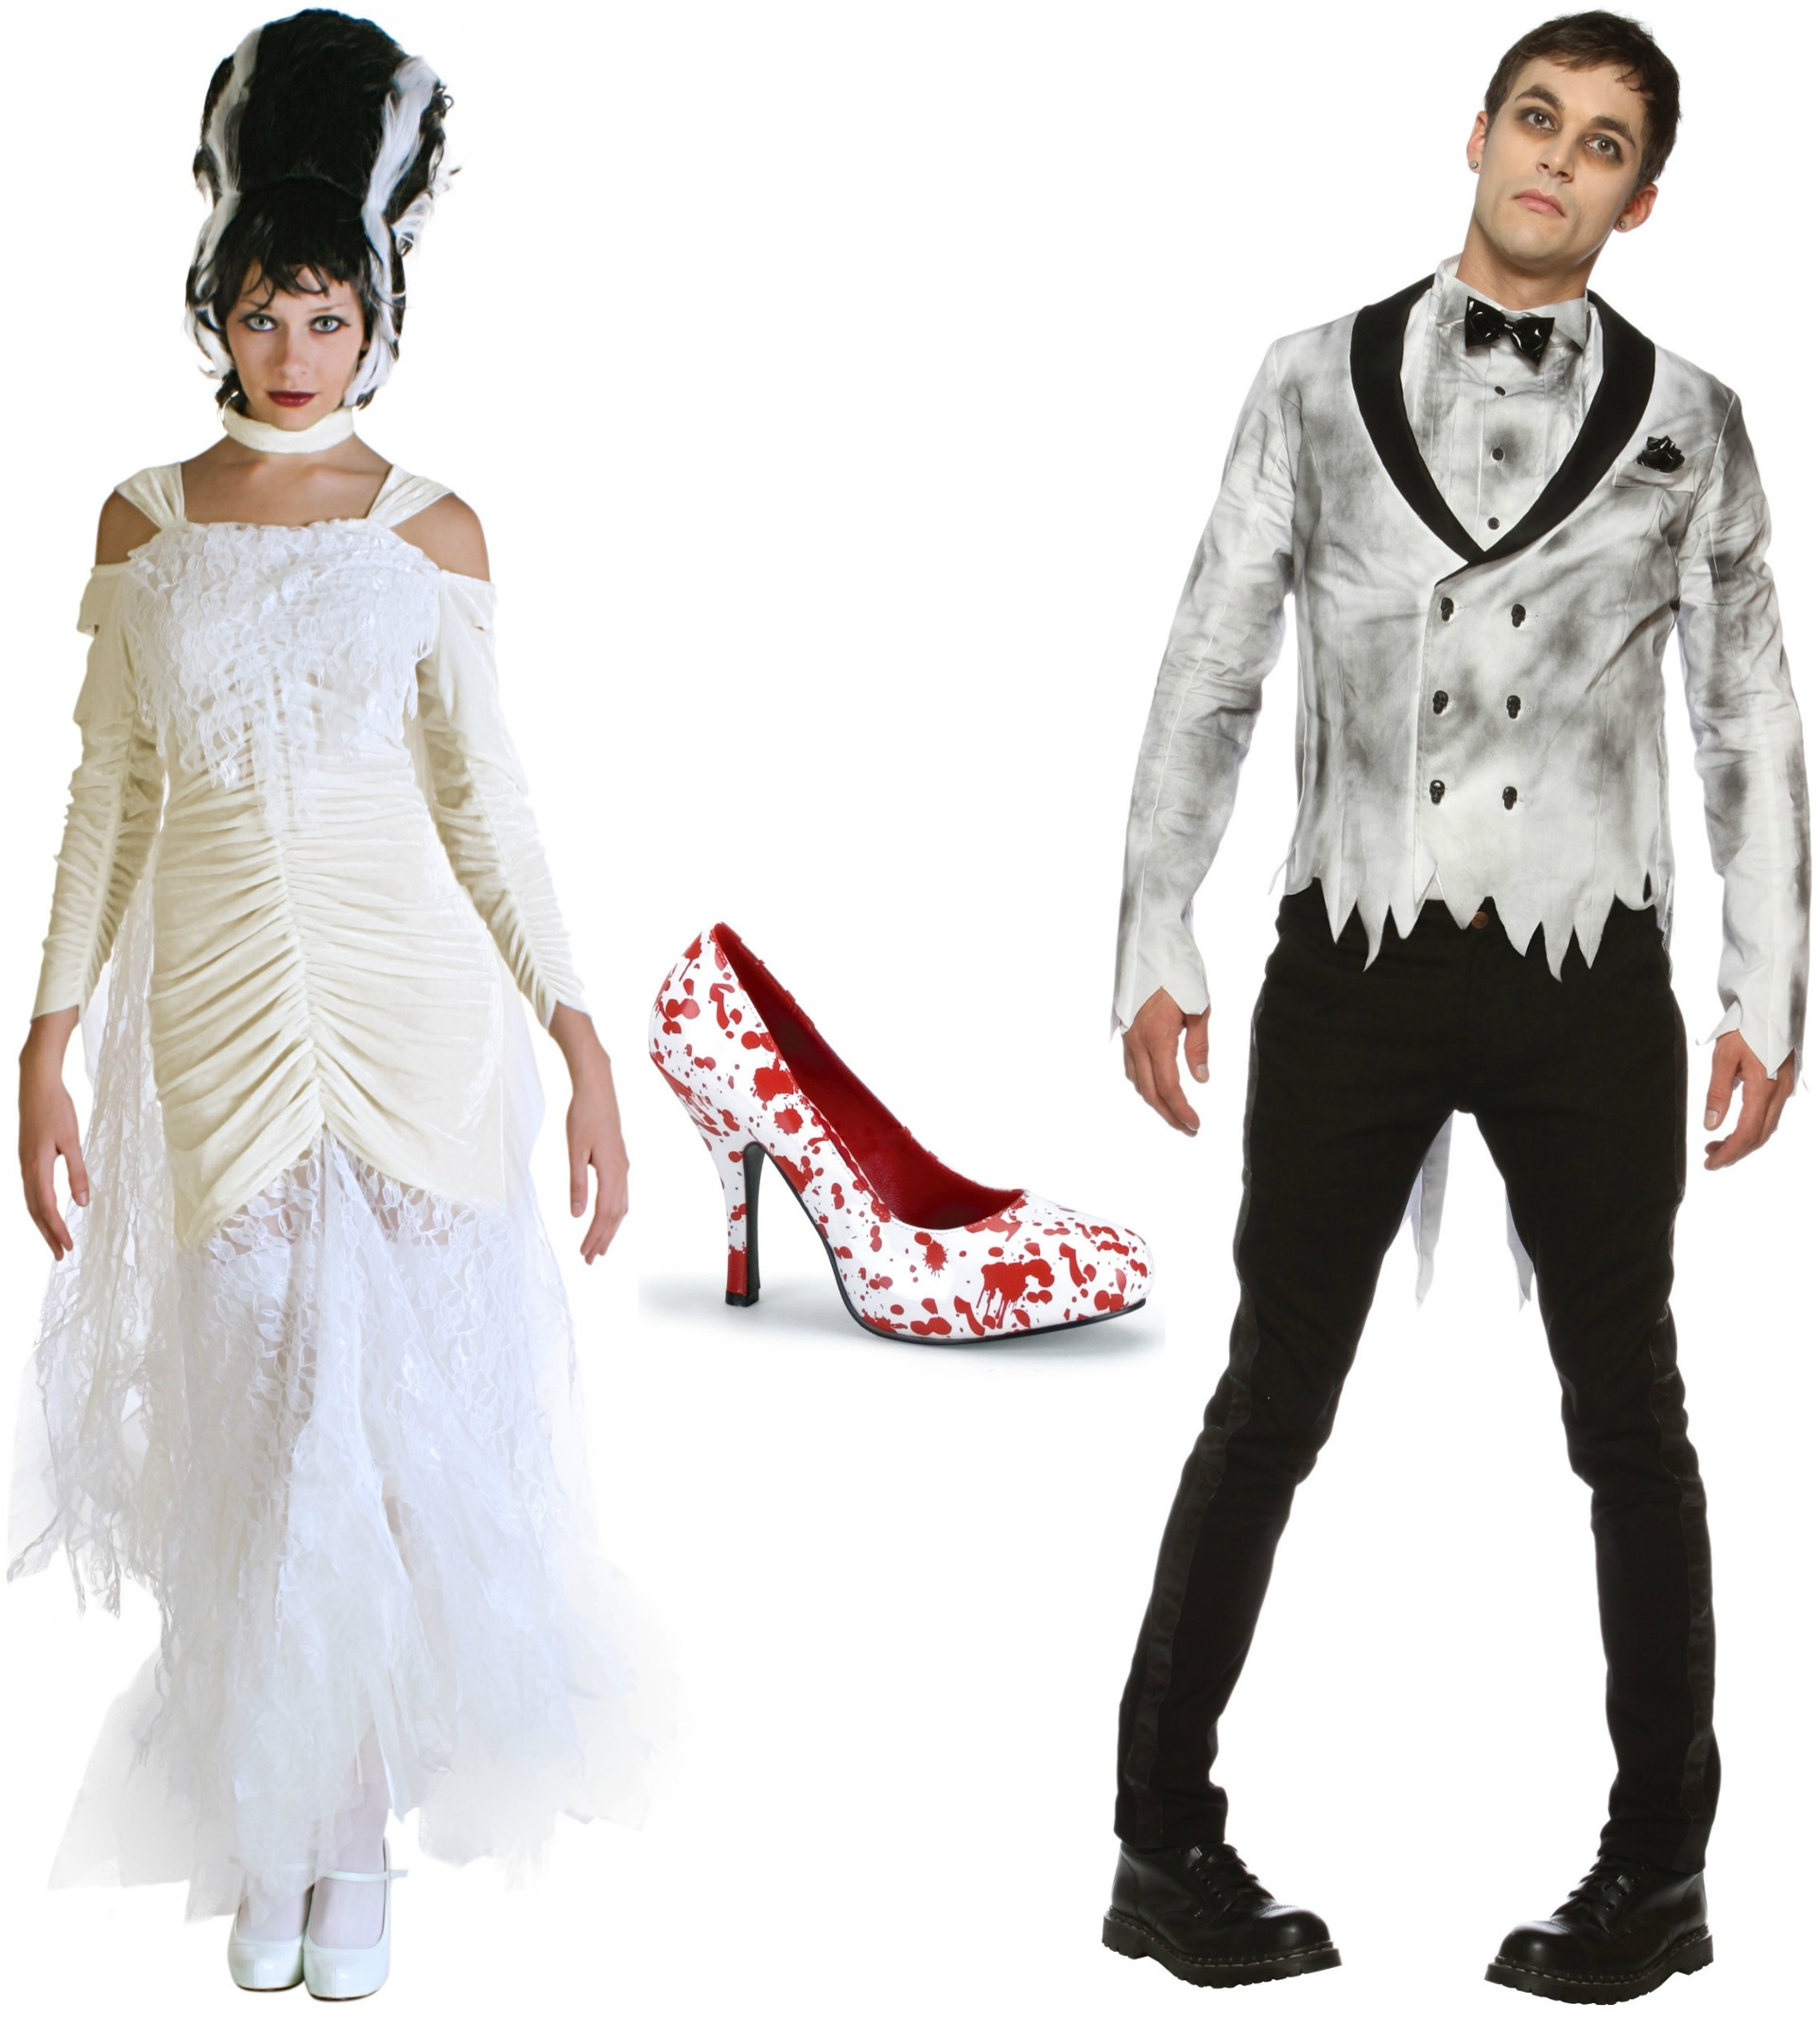 Wedding Halloween Costumes: 6 Ideas For A Spooky Wedding